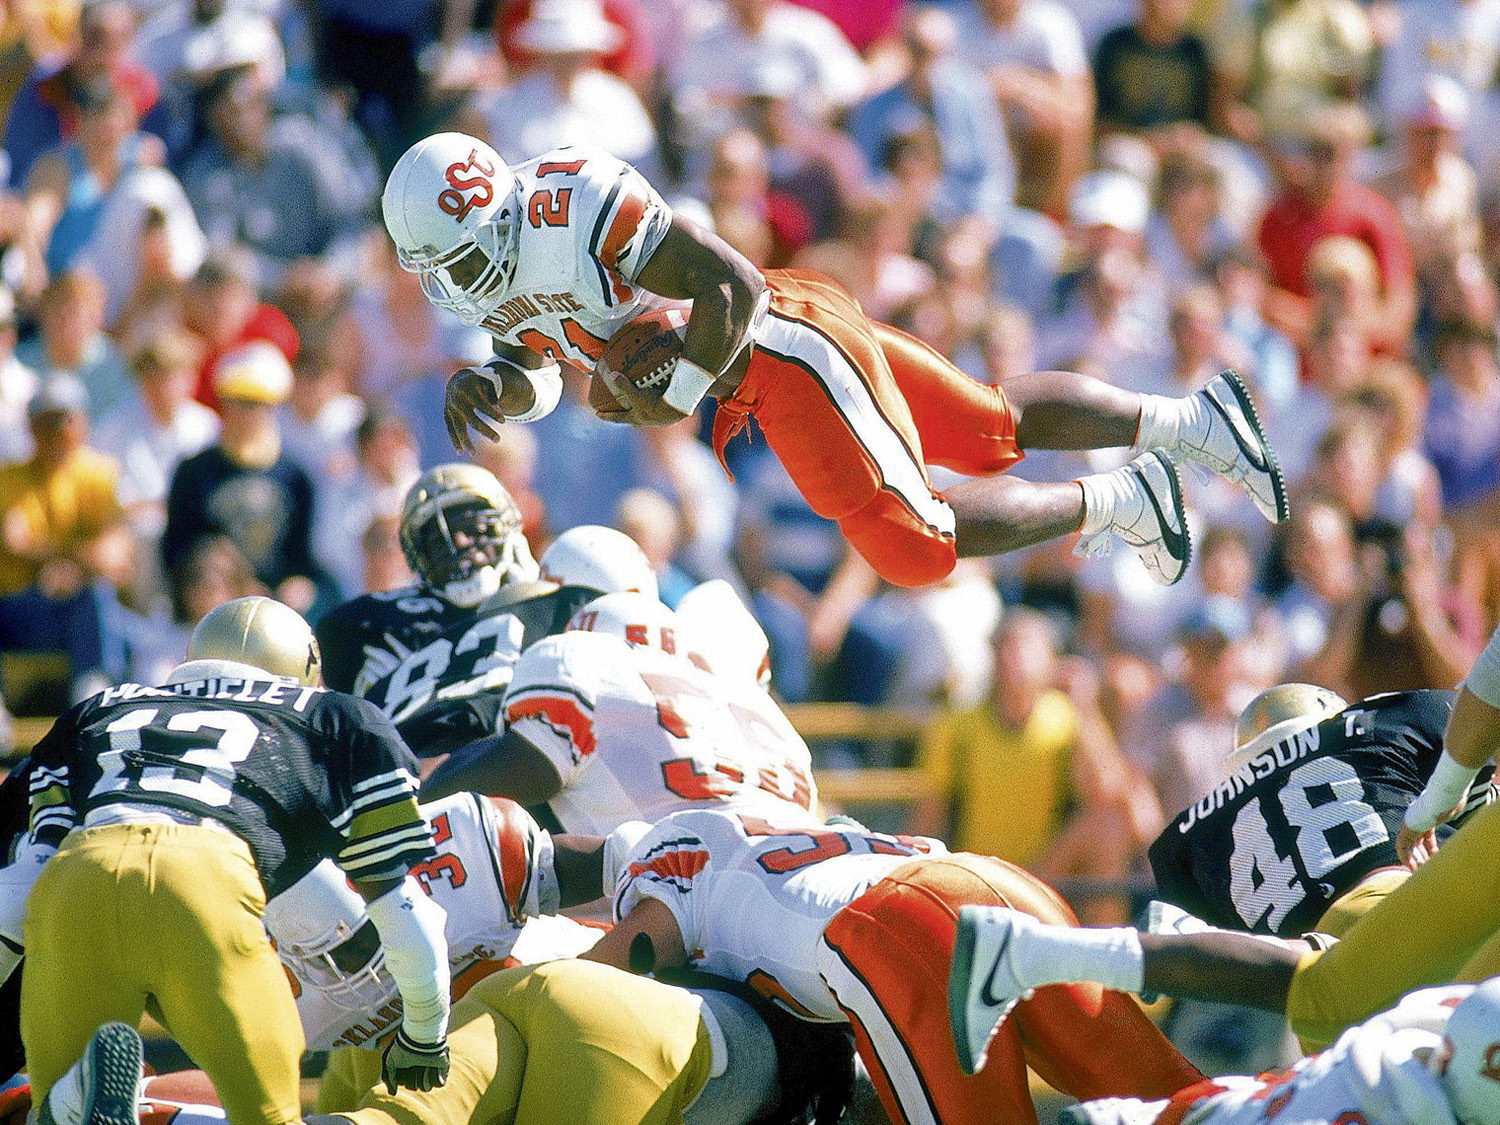 Heisman Trophy winner Barry Sanders flies over the defense of Colorado for a TD.